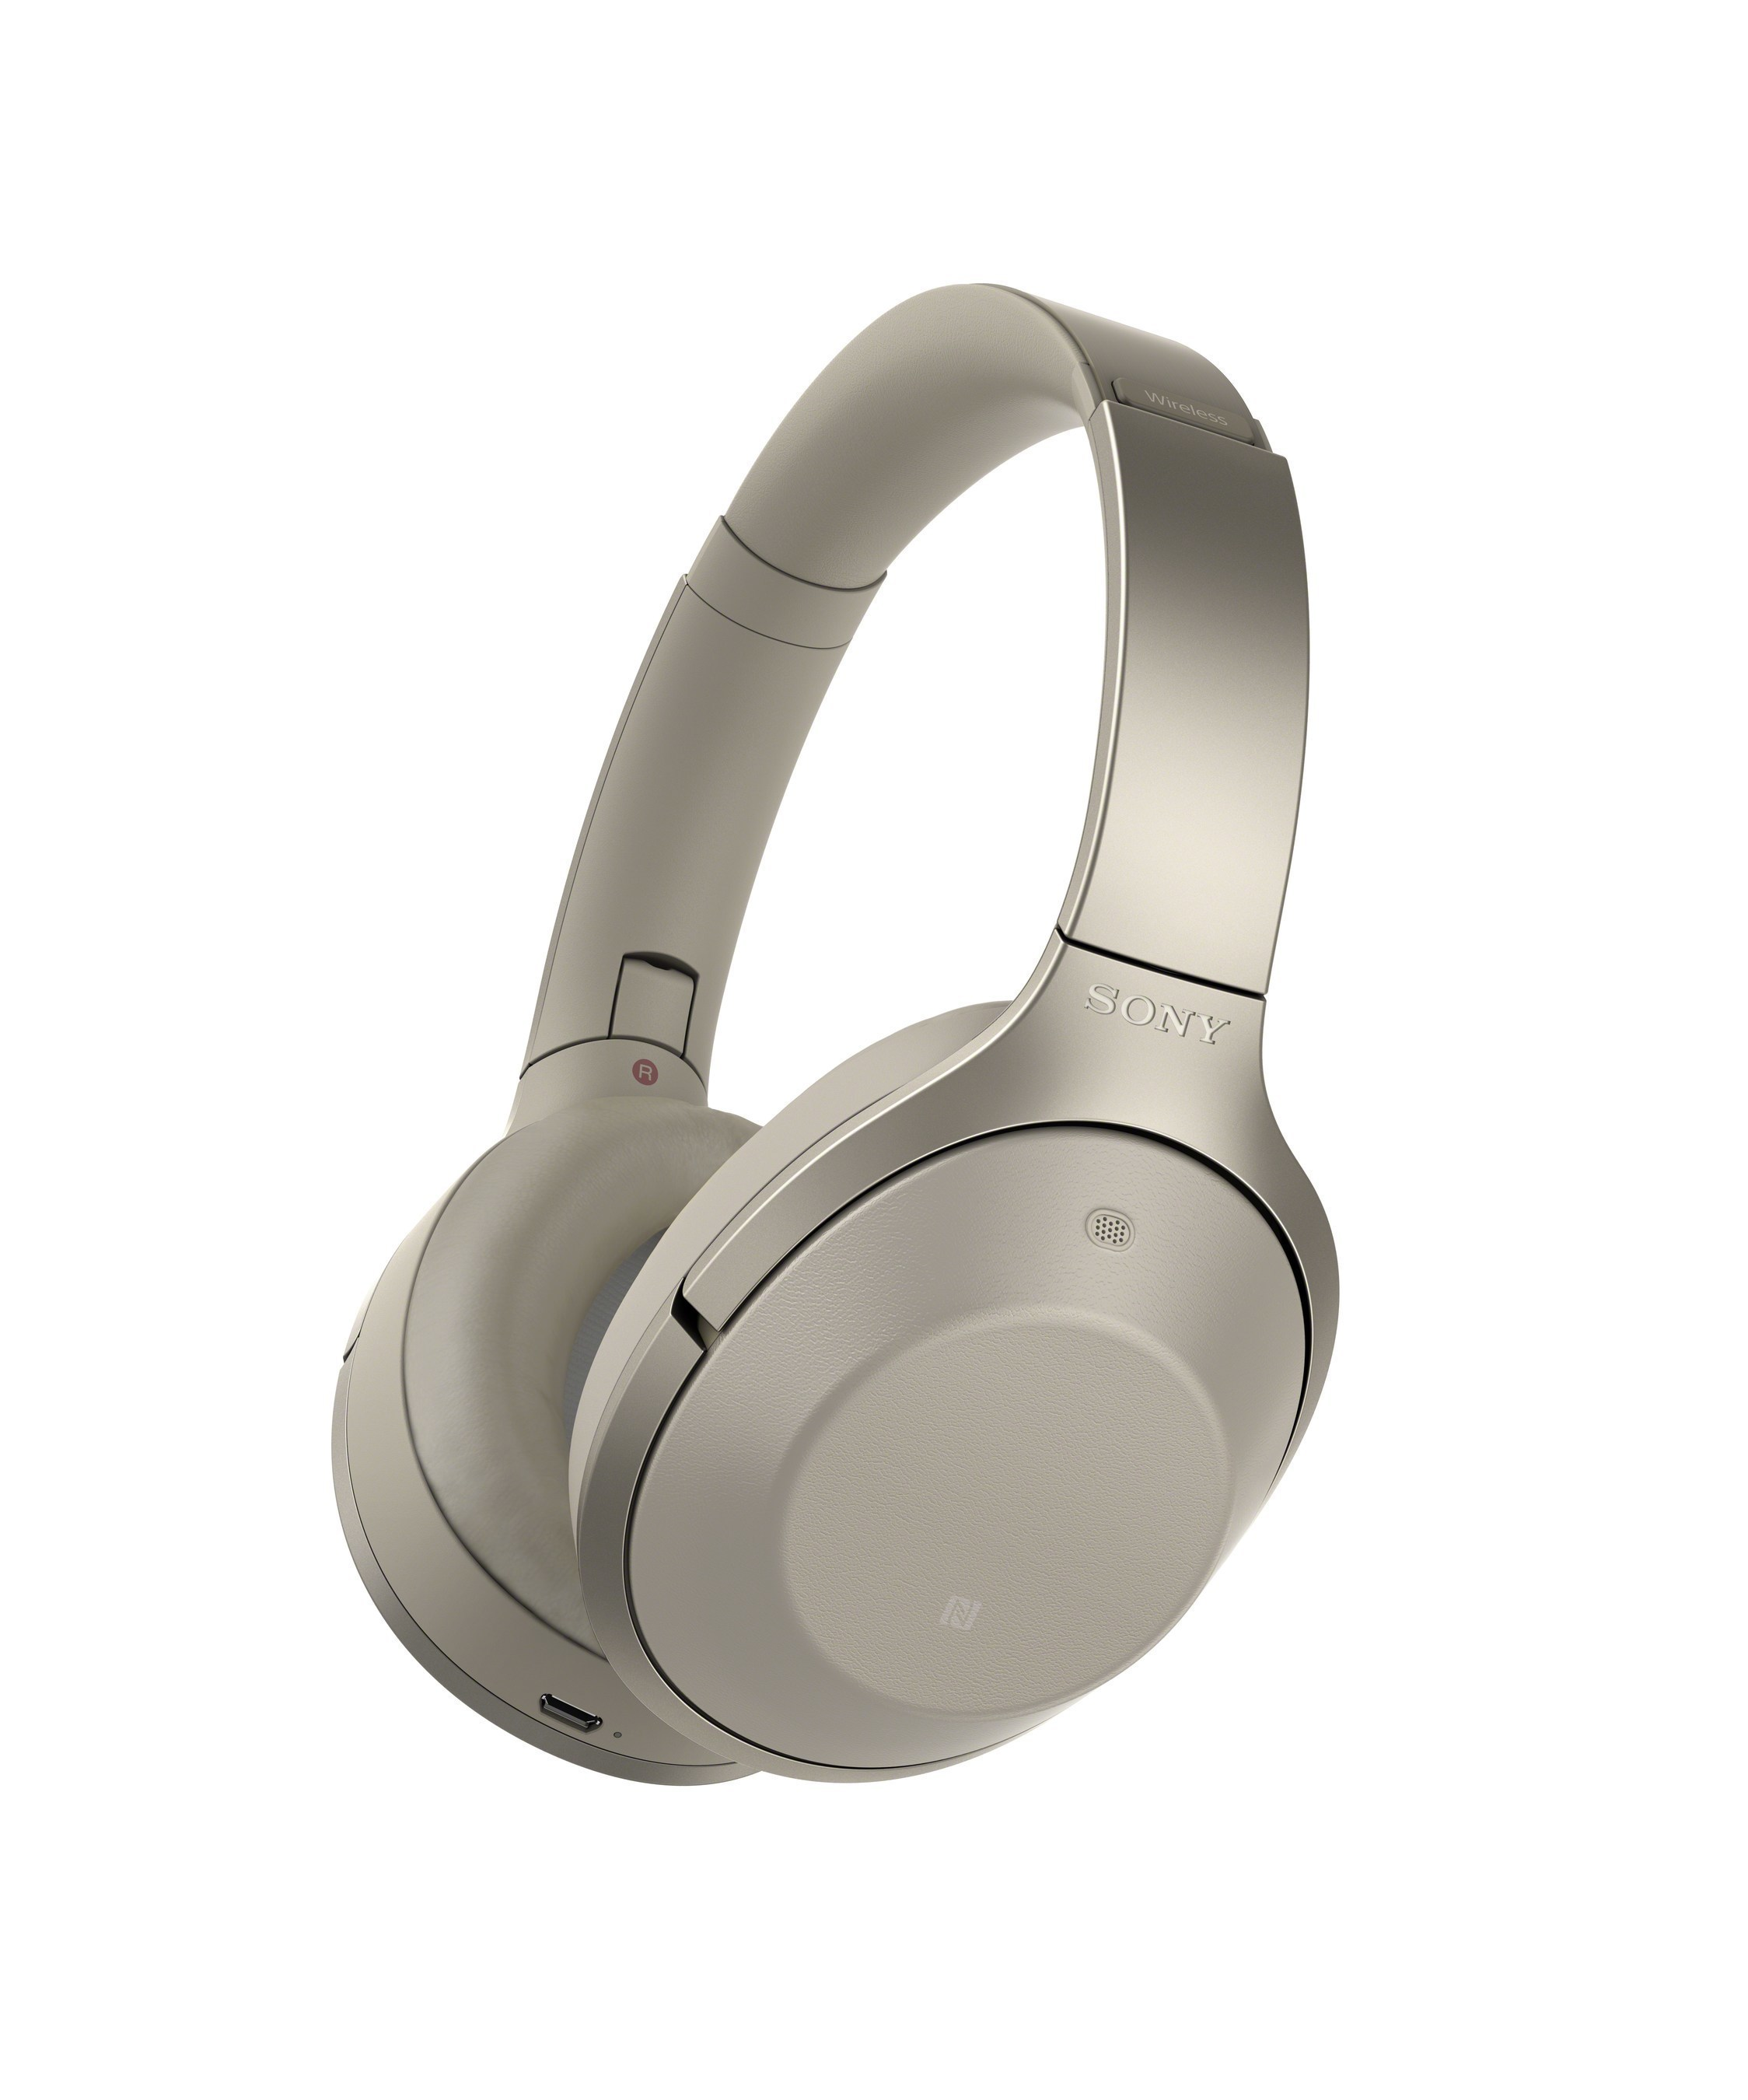 Sony's new MDR-1000X noise cancelling headphones.